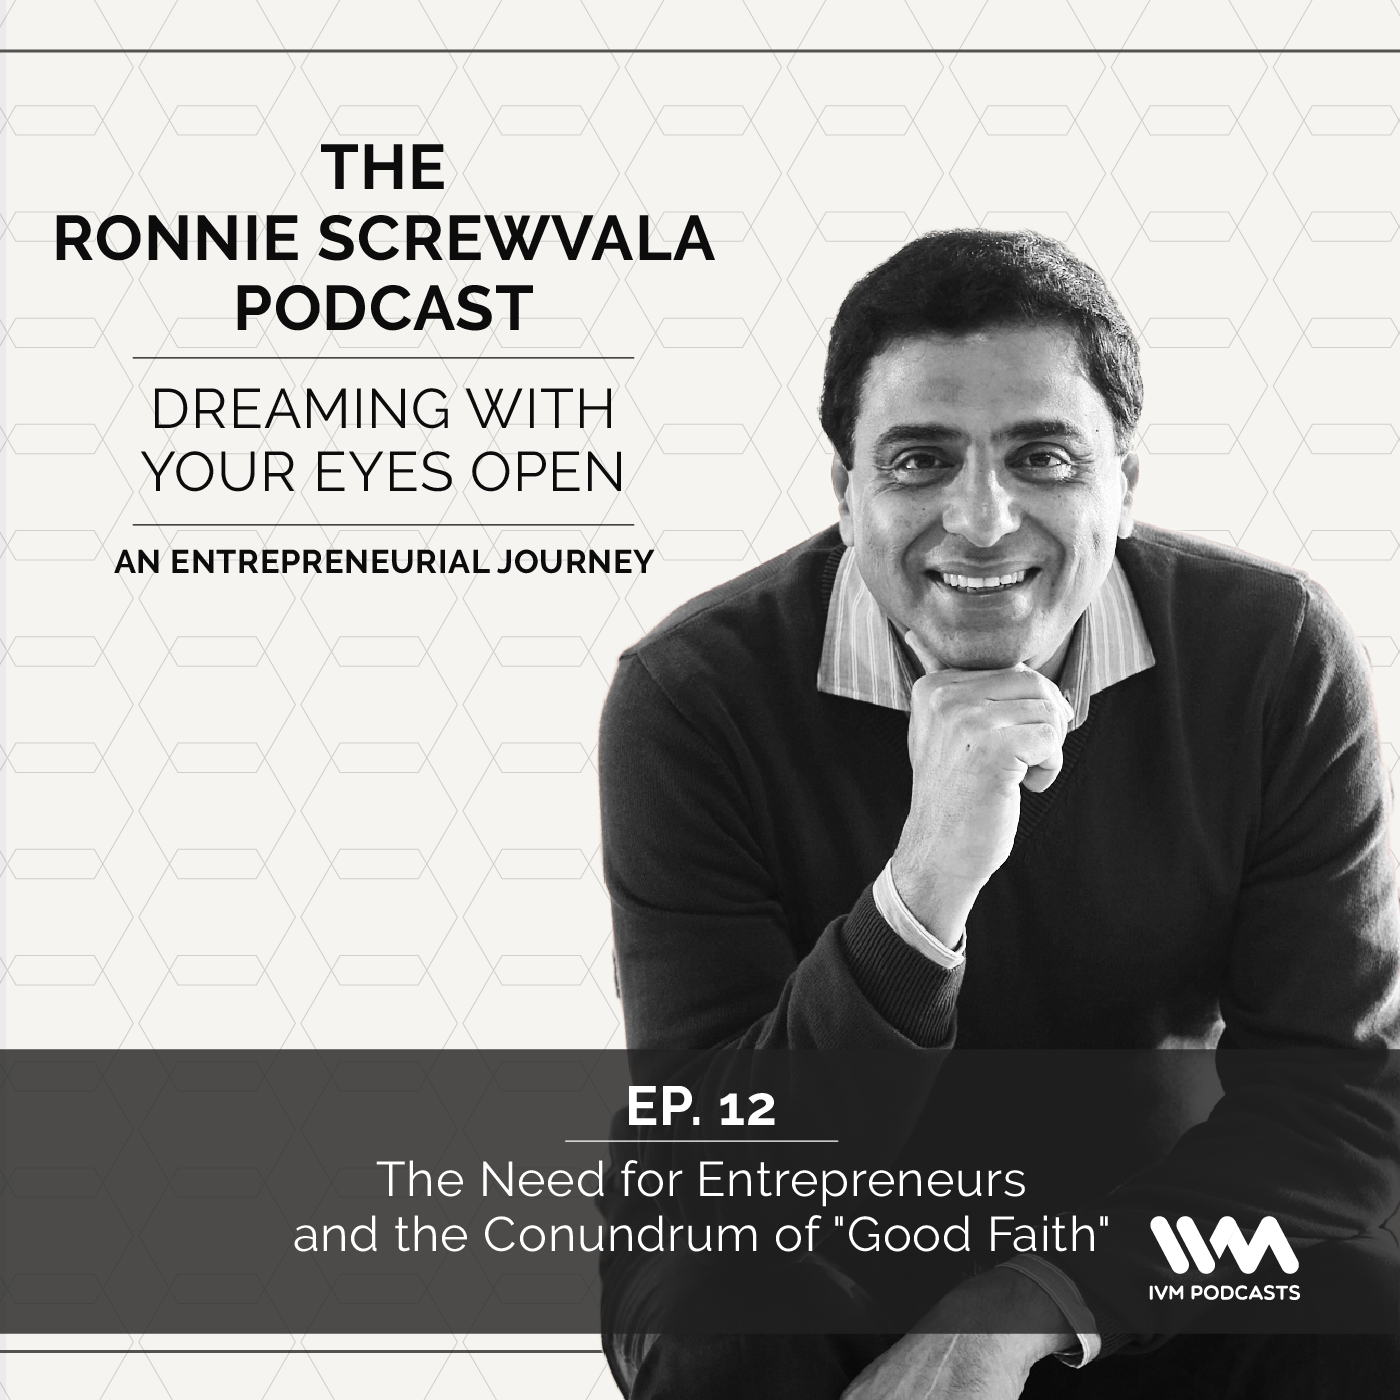 """Ep. 12: The Need for Entrepreneurs and the Conundrum of """"Good Faith"""""""